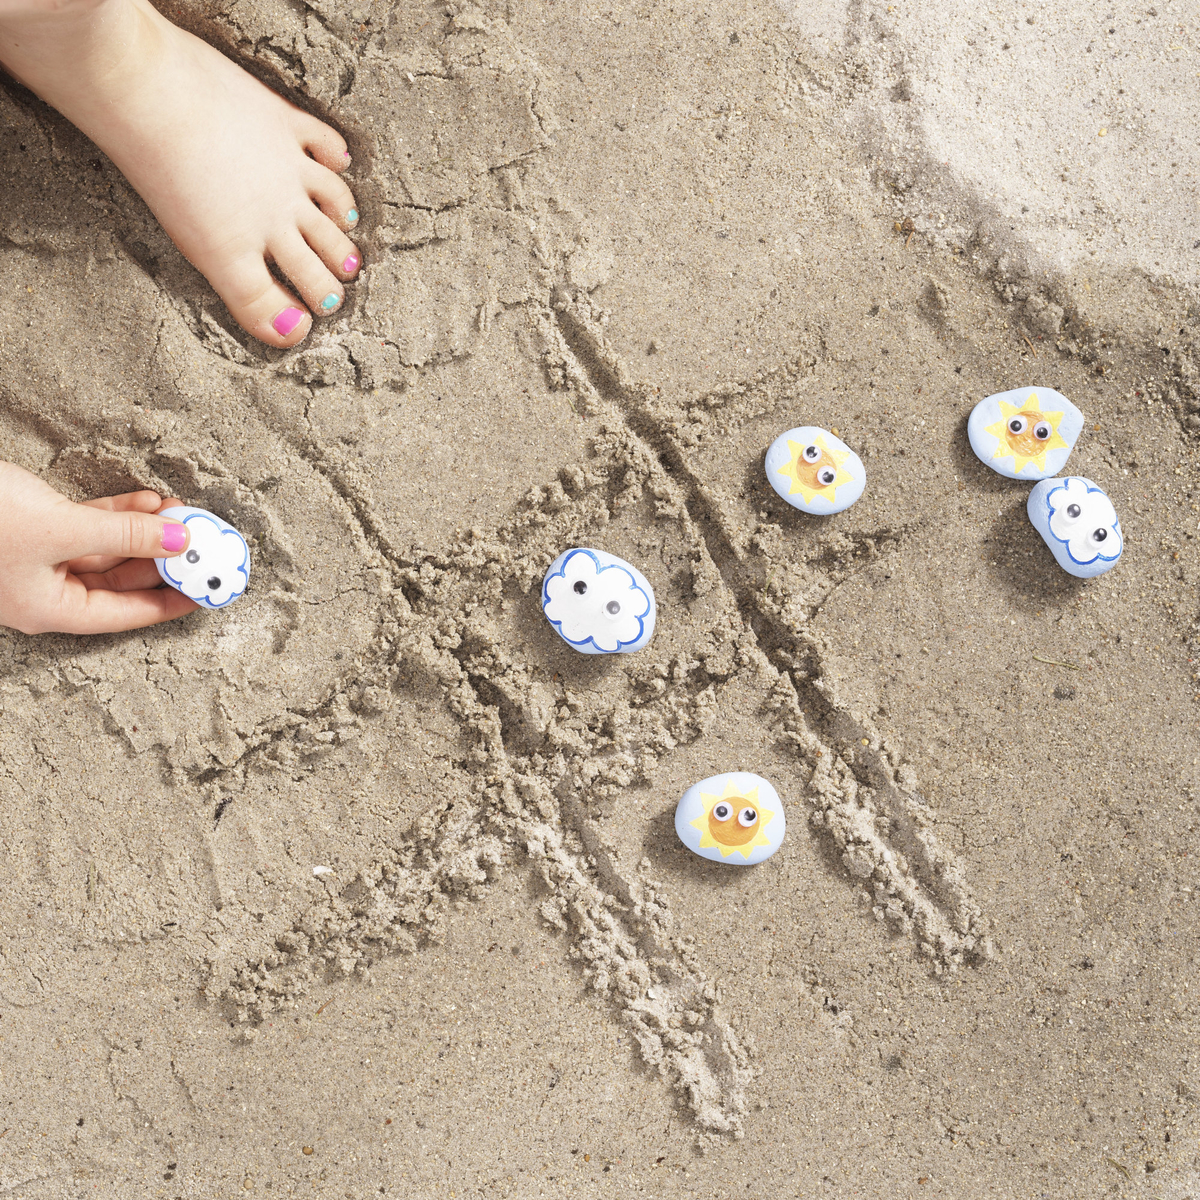 Noughts and crosses on the beach